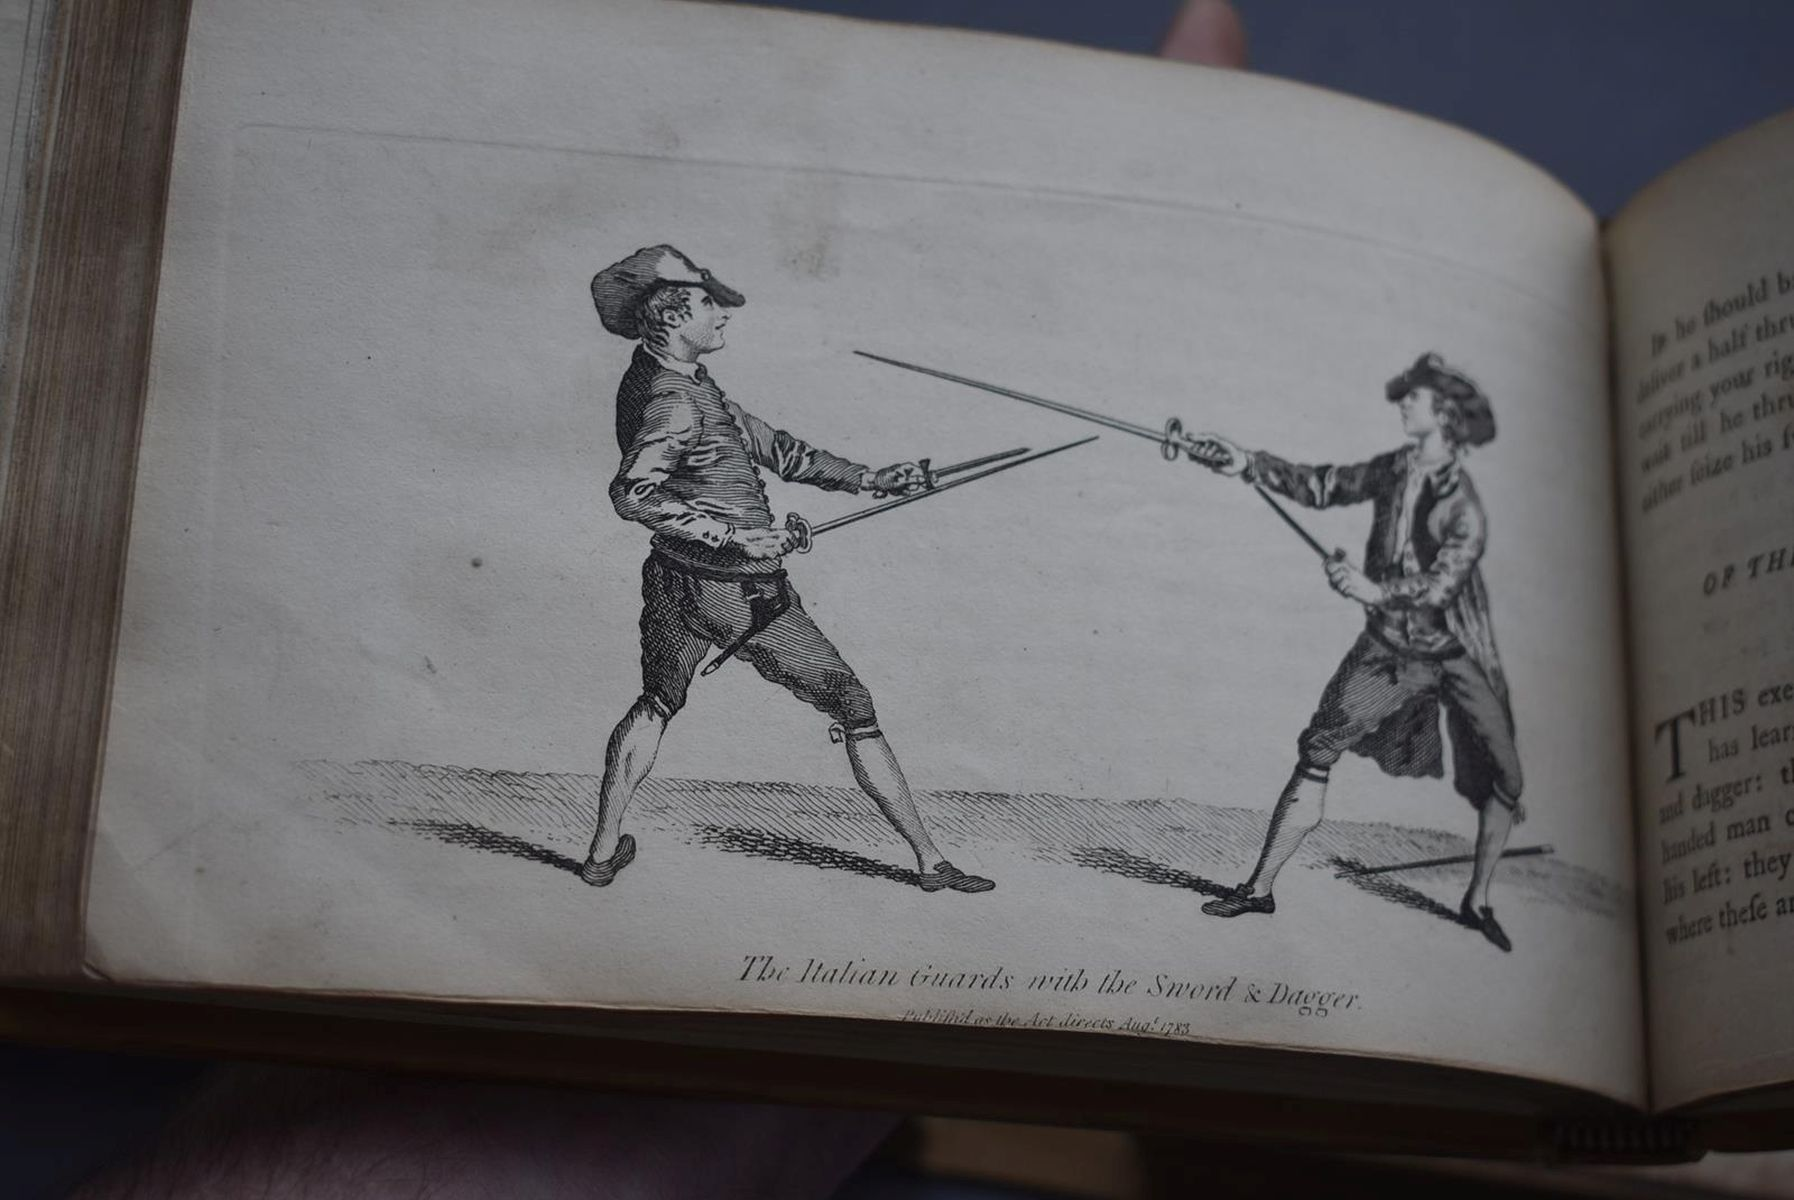 BOOKS: ANGELO DOMENICO (1717?-1802) THE SCHOOL OF FENCING (L'ECOLE DES ARMES), trans. Rowlandson, - Image 10 of 11